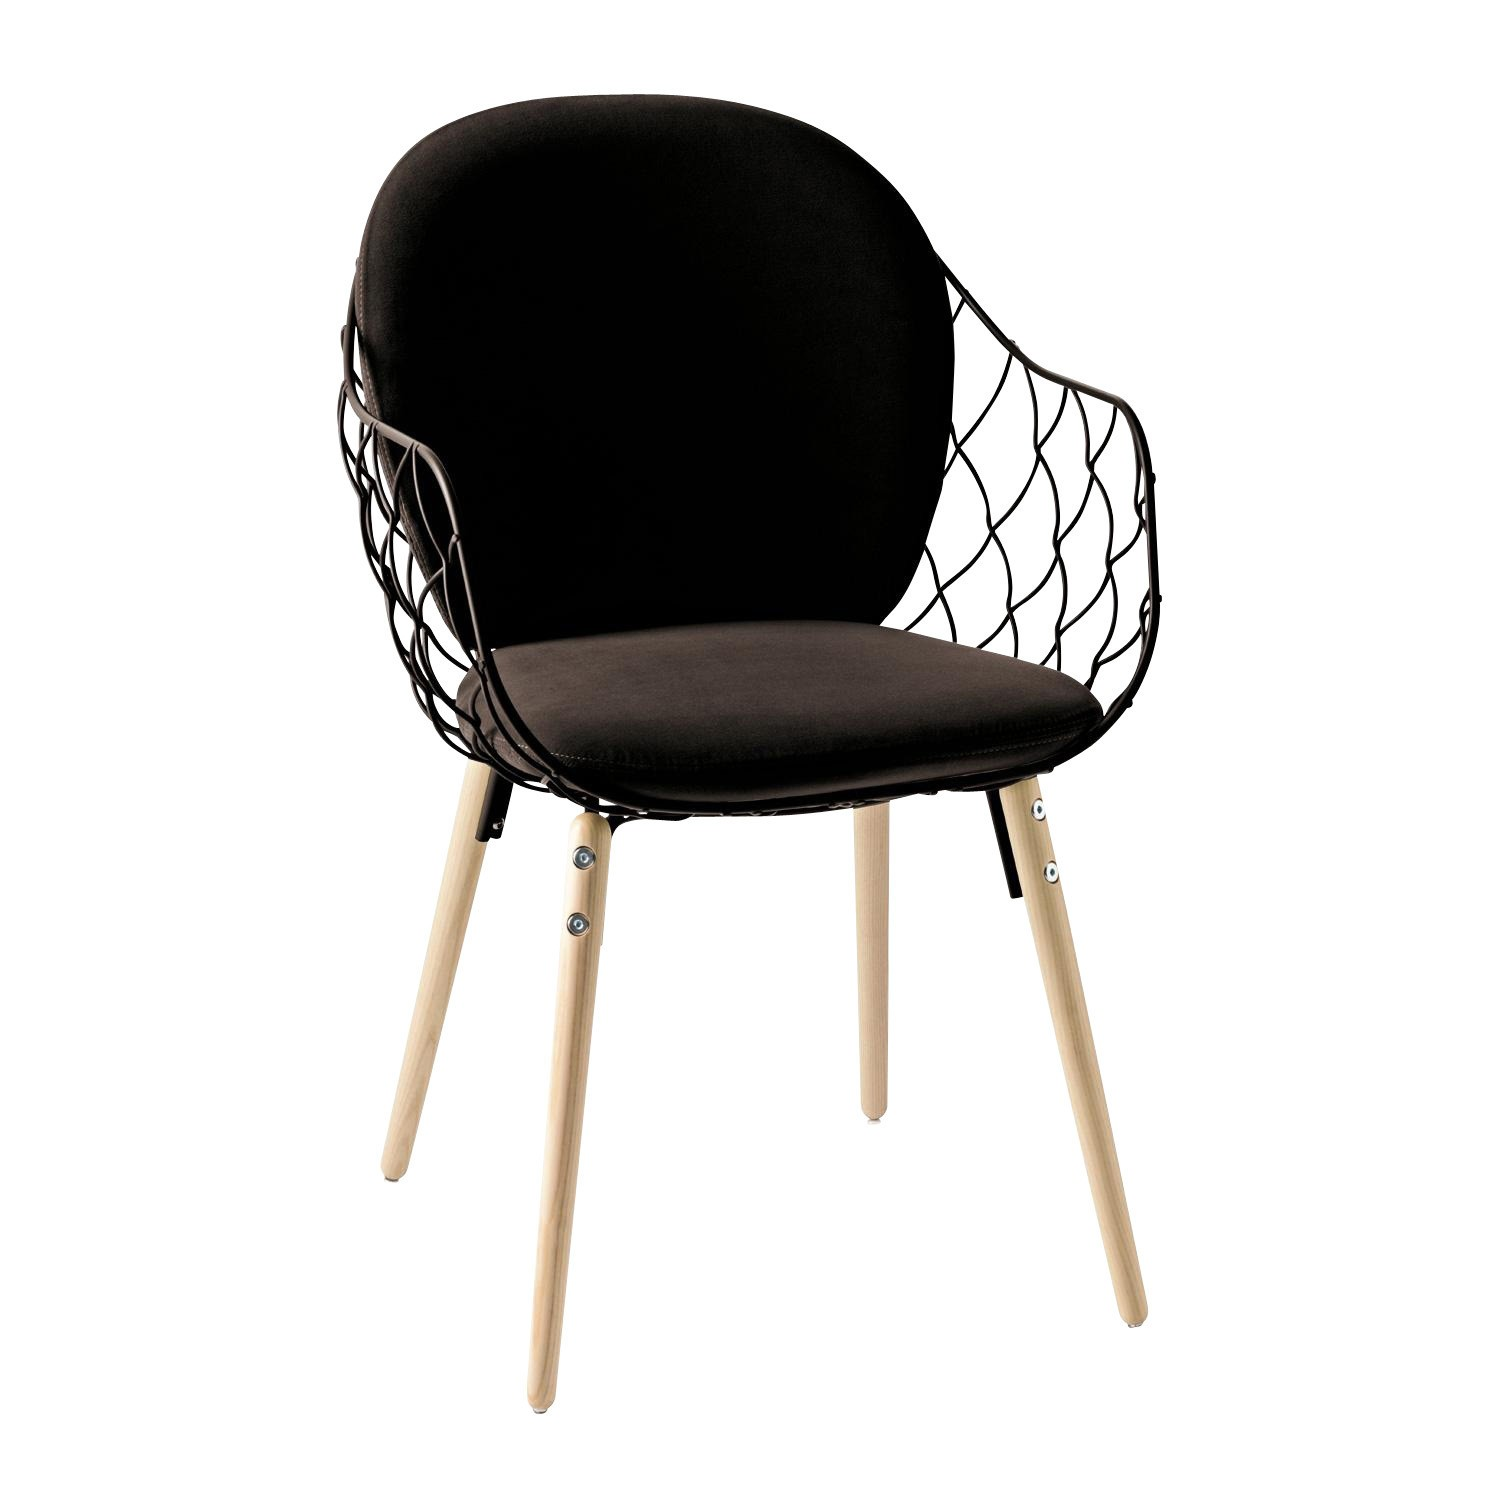 Magis pi a chair fabric fully upholstered ambientedirect for Magis chair